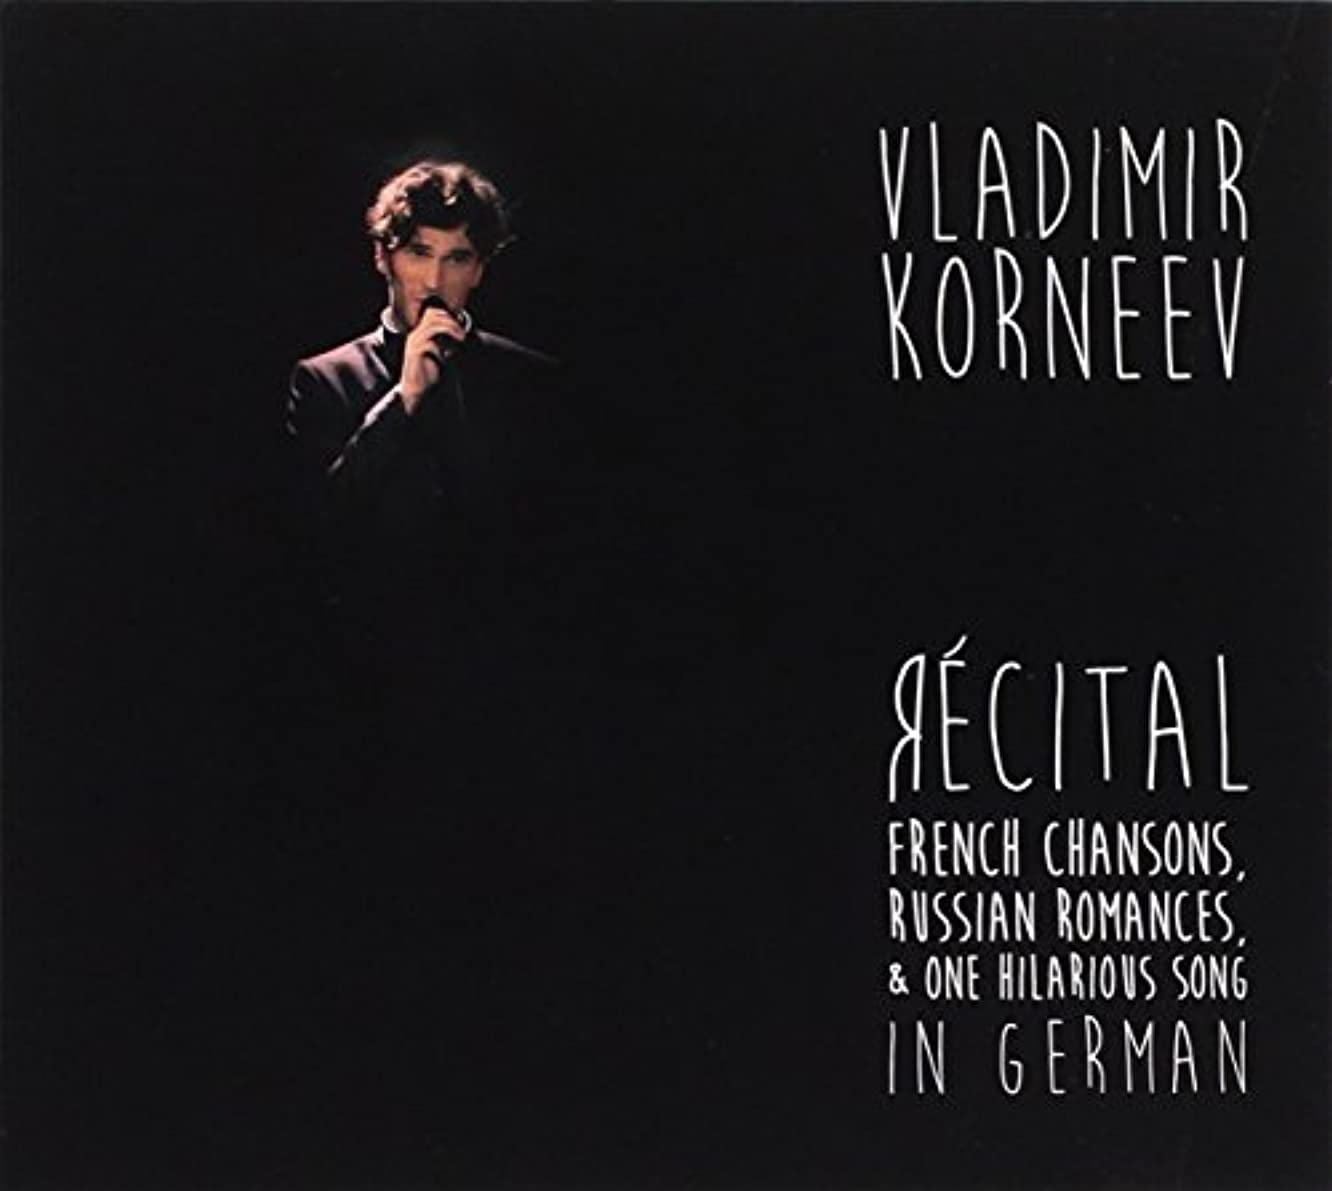 Recital: French Chansons, Russian Romances, and One Hilarious Song InGerman